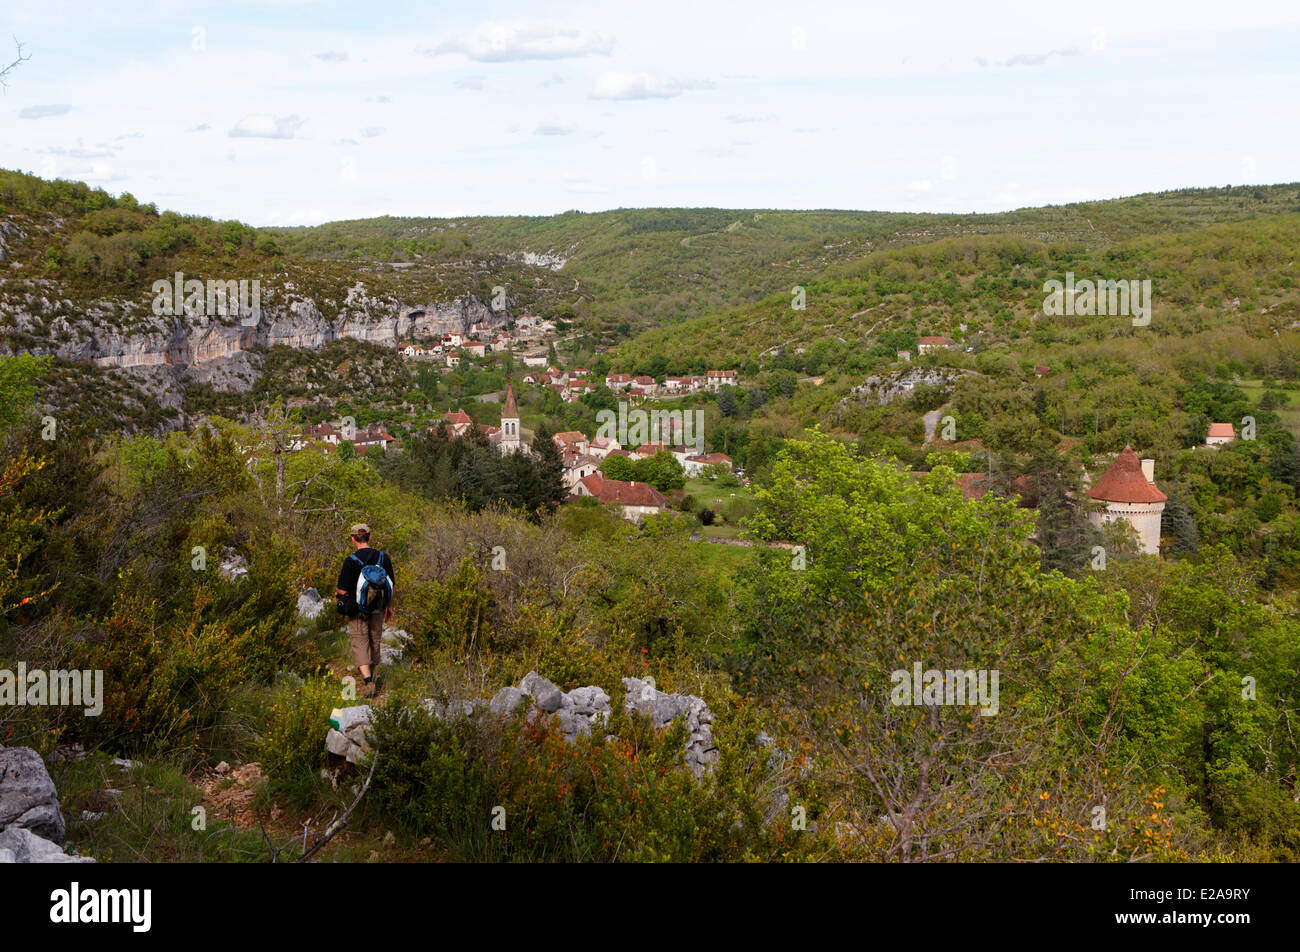 France, Lot, Quercy, Cele Valley, Cabrerets - Stock Image